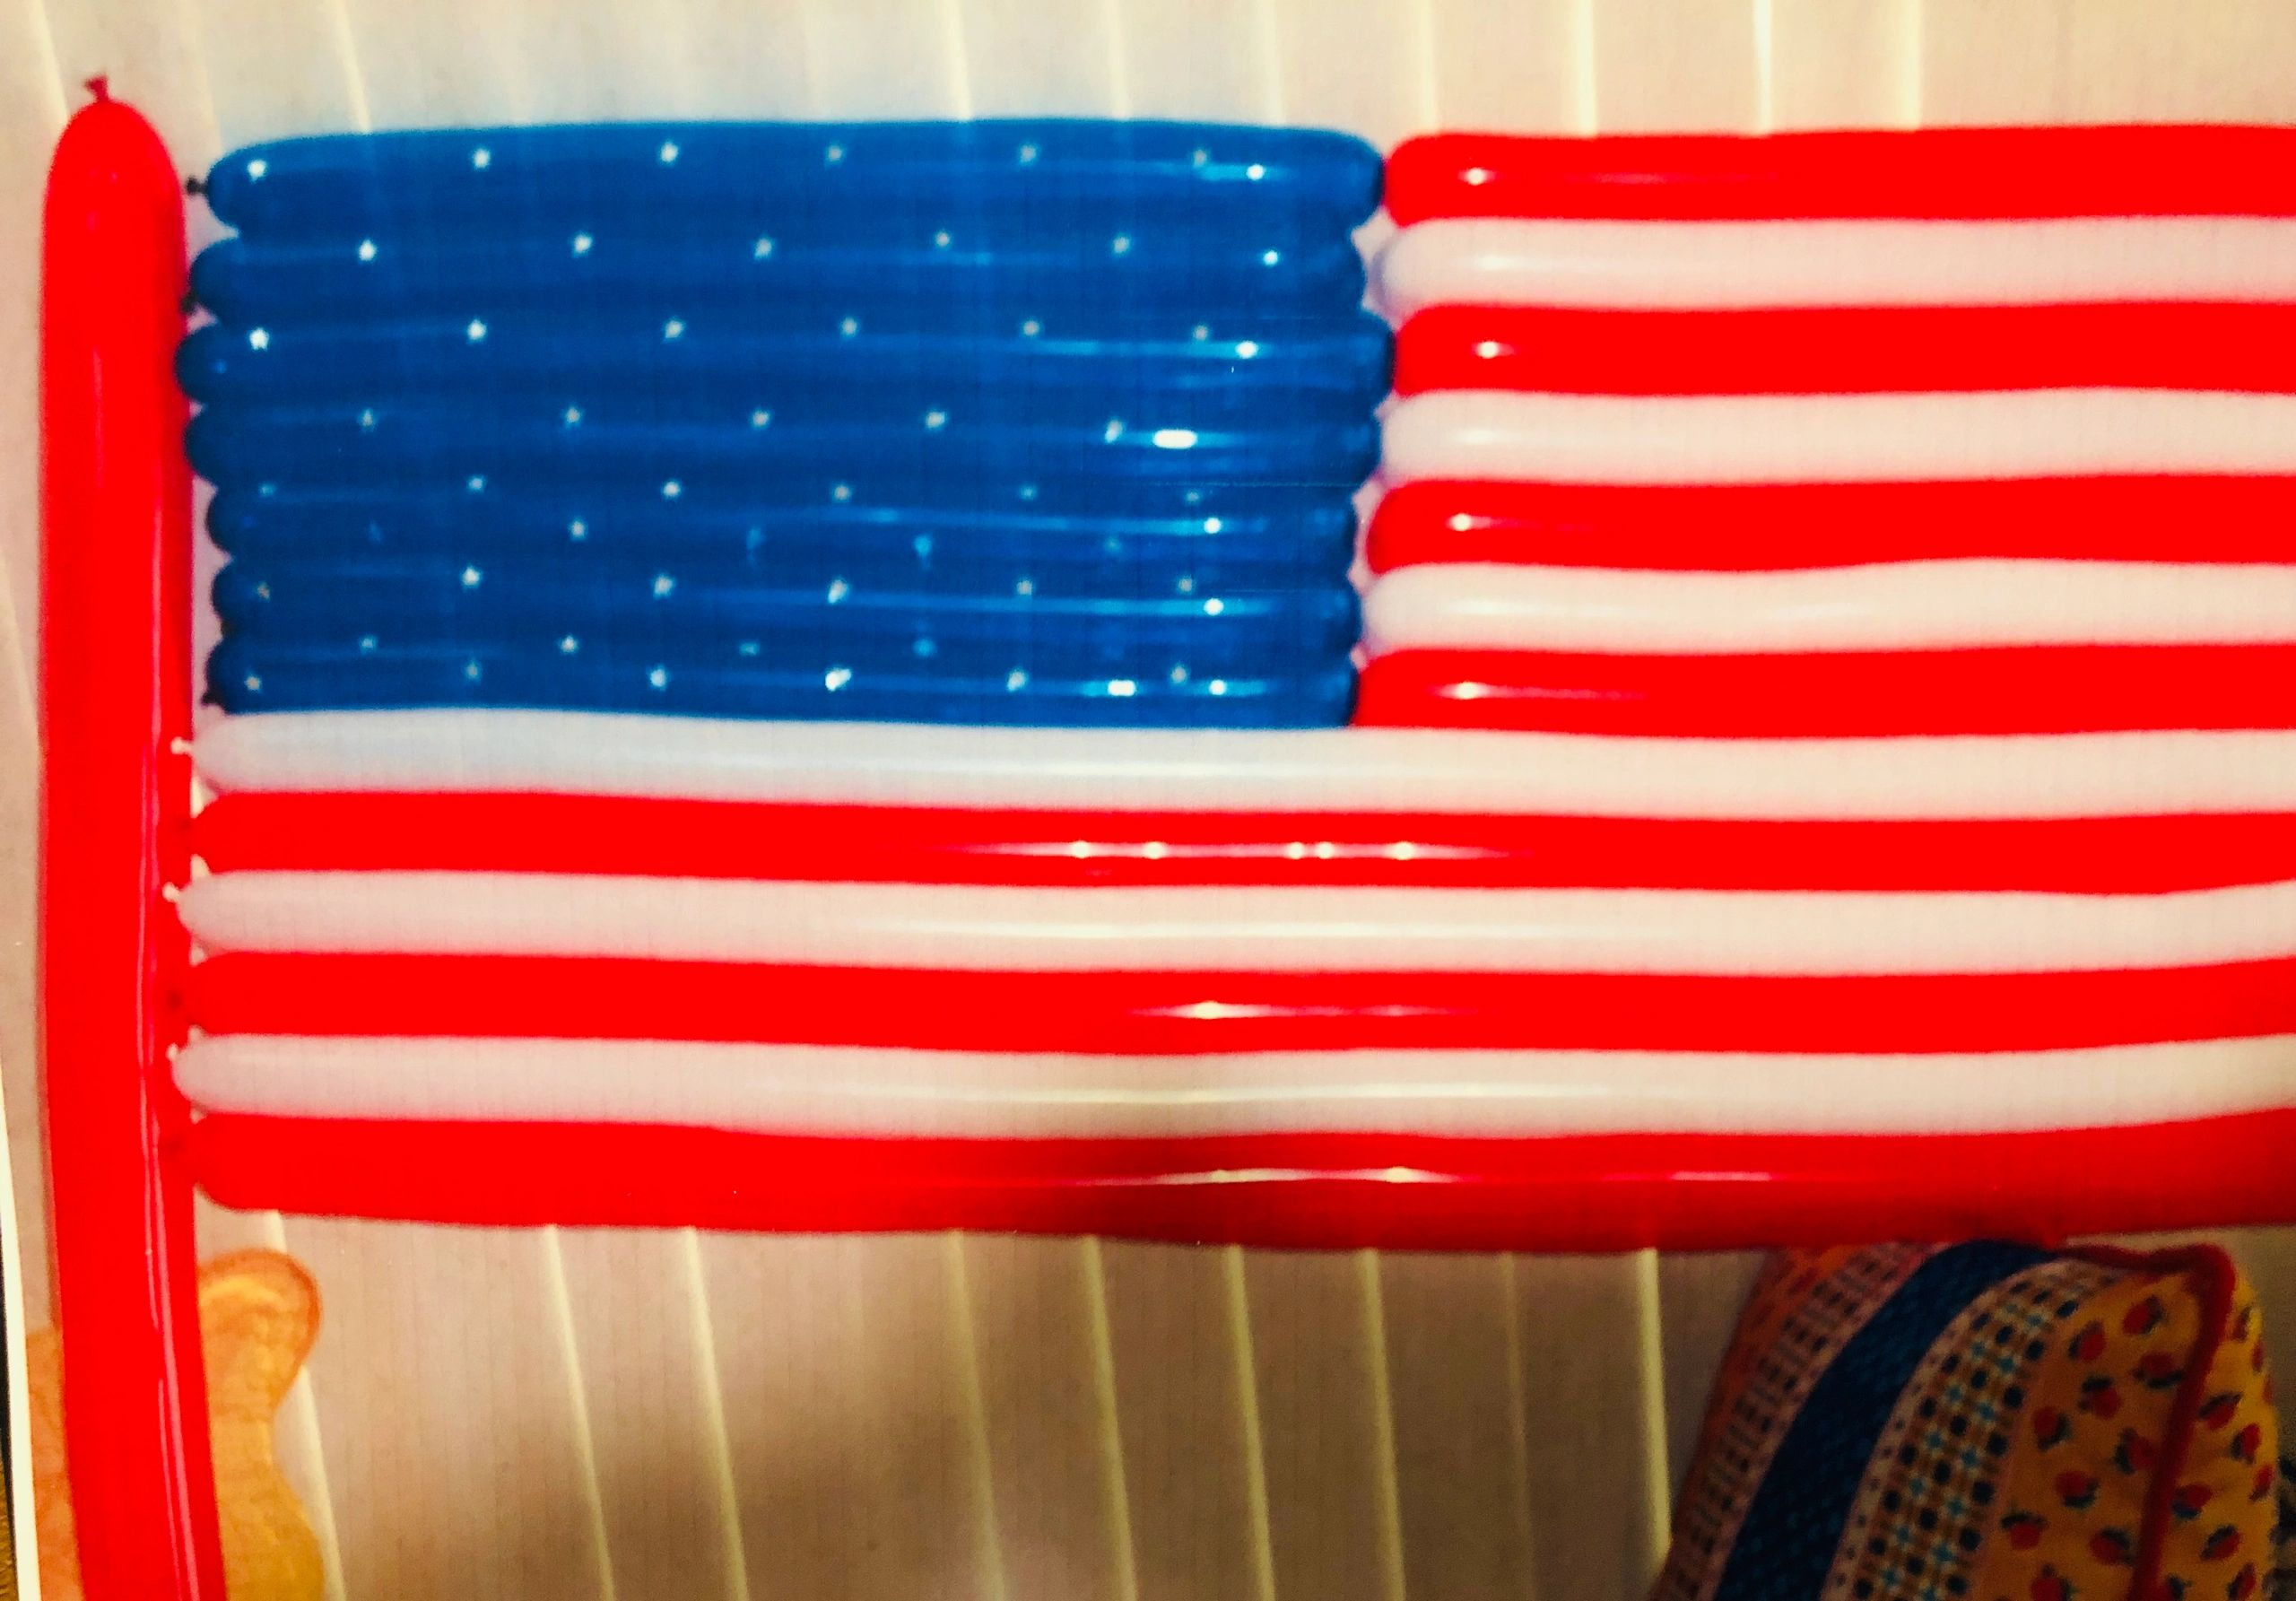 American Flag made out of 360Q Balloons by America's Real Entertaining Friend (AREF).